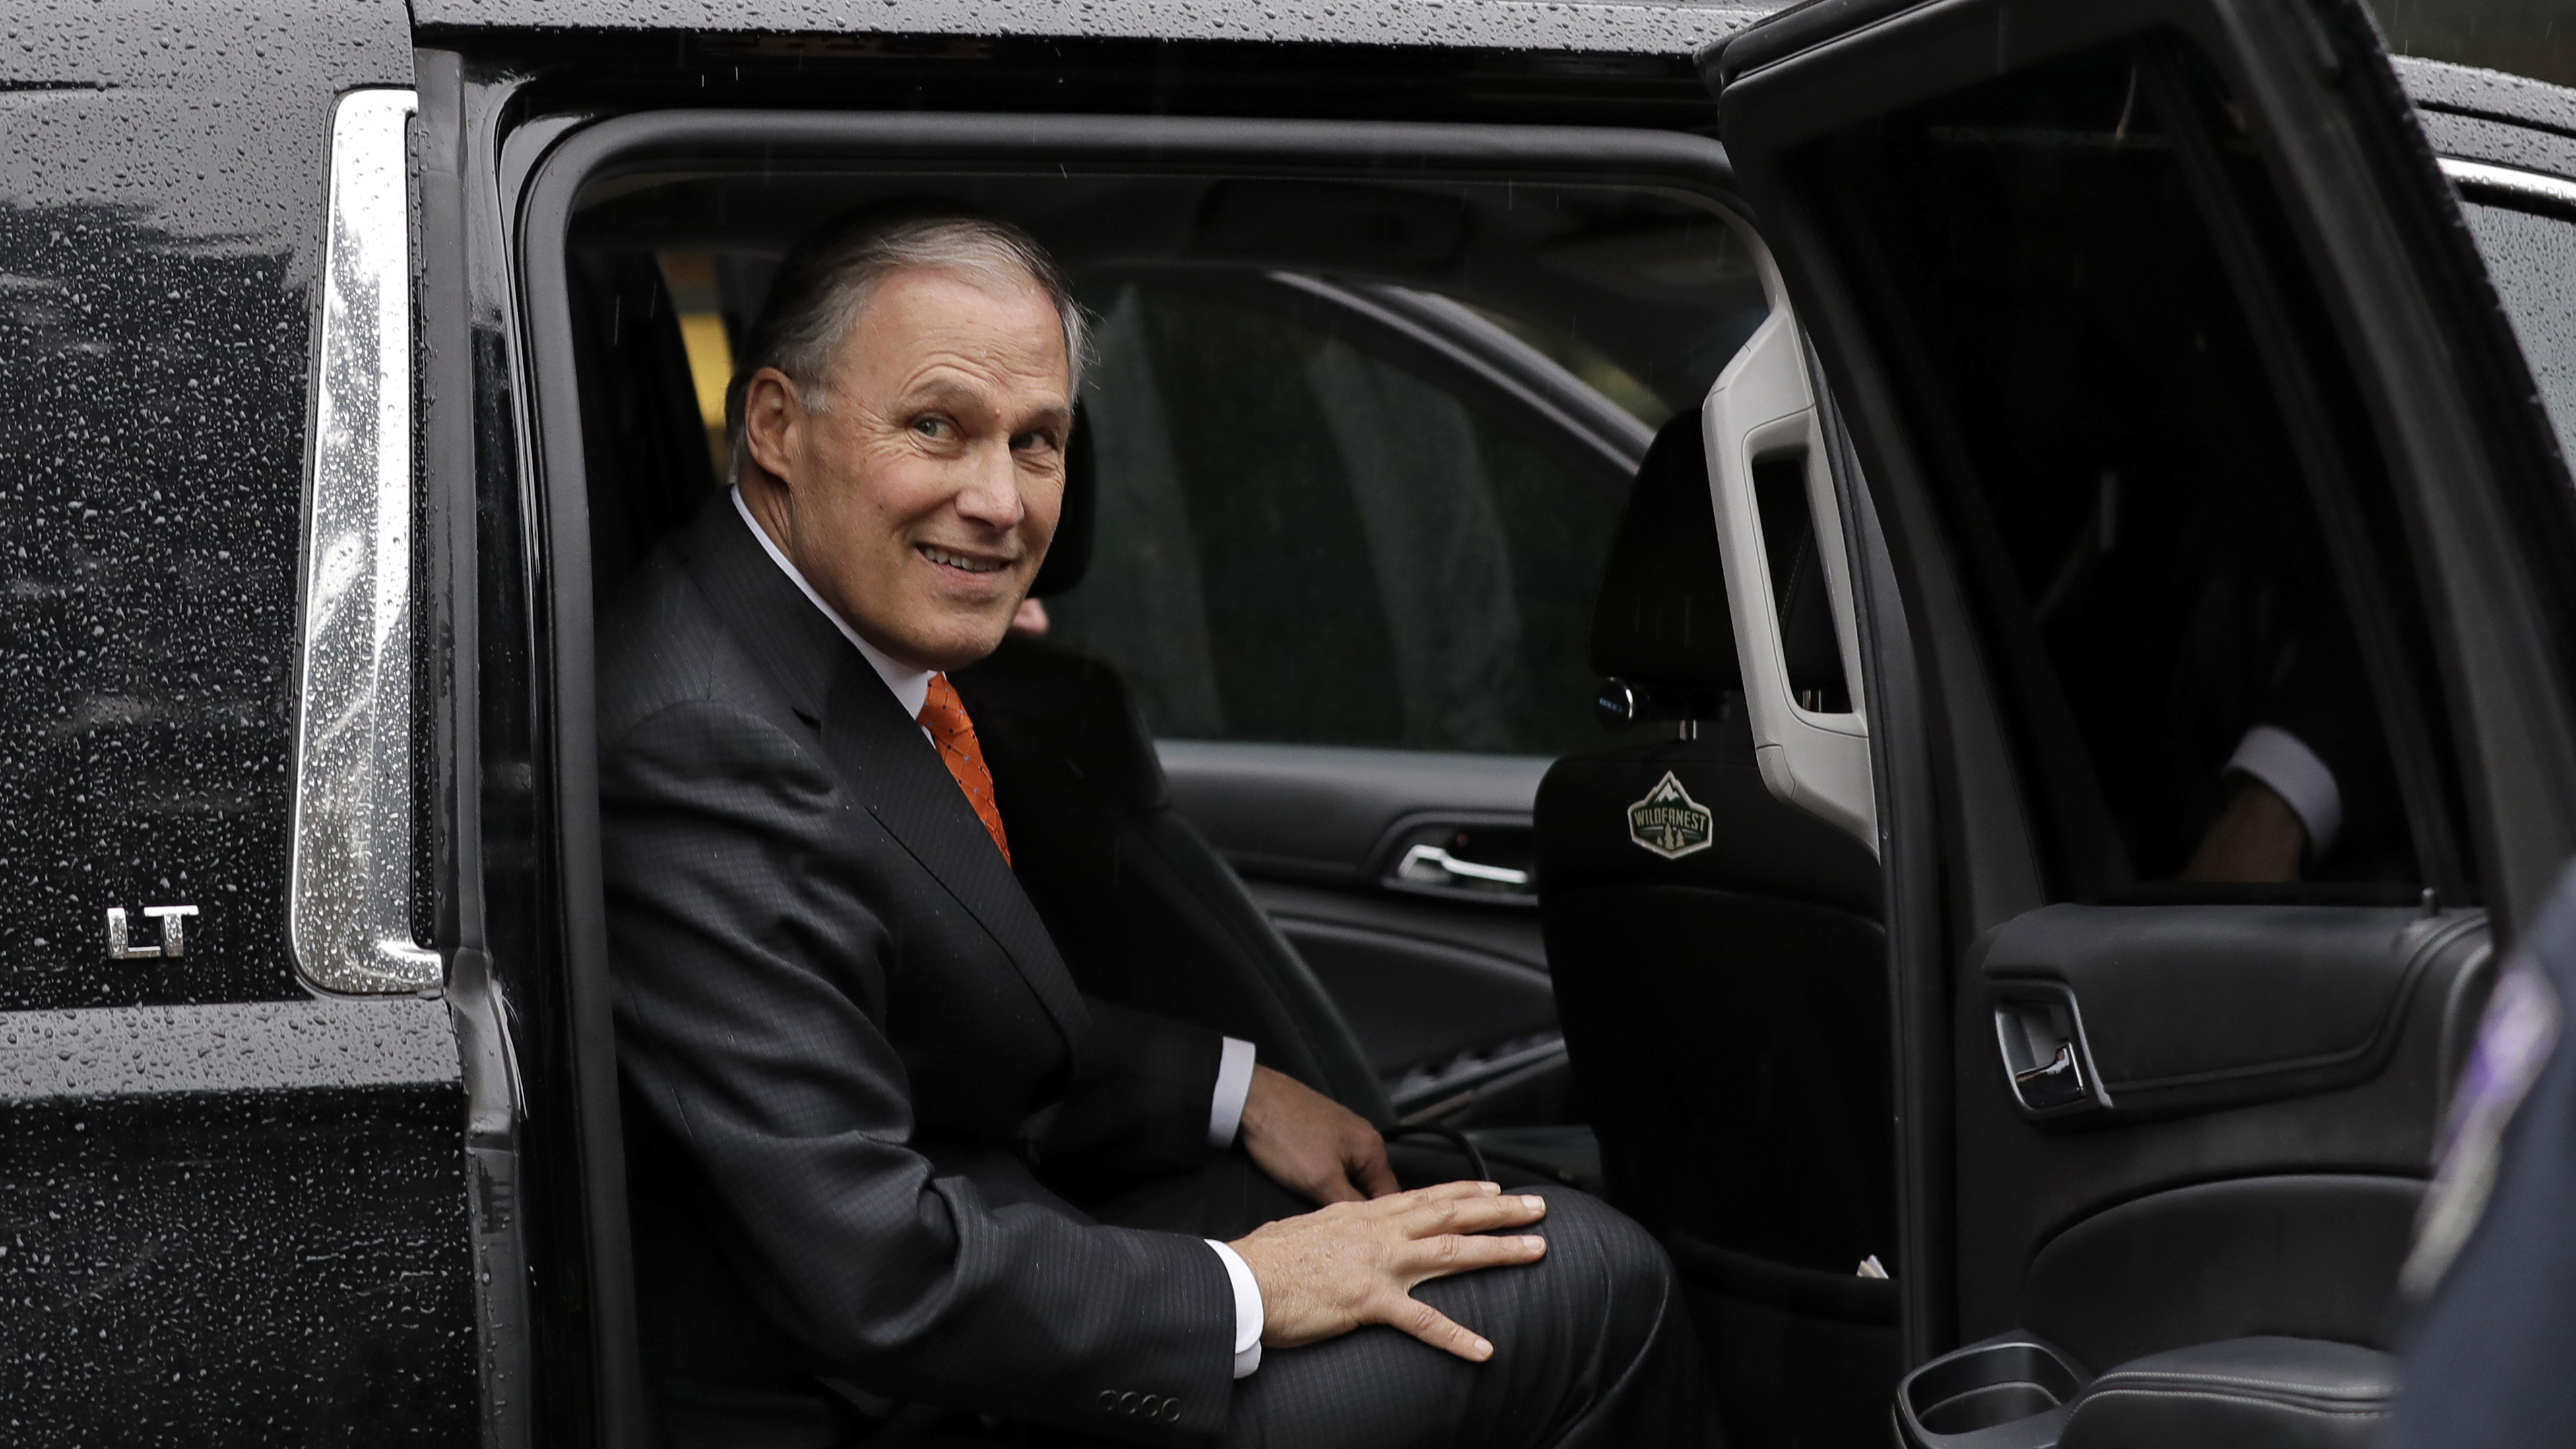 """Washington Gov. Jay Inslee gets into an SUV after speaking Wednesday, March 6, 2019, on at non-partisan panel discussion titled """"Foreign Affairs and National Security in the Age of Climate Change"""" hosted by the University of Washington Jackson School and the American Security Project on the UW campus in Seattle. Inslee announced last week that he would be seeking the Democratic nomination for President."""